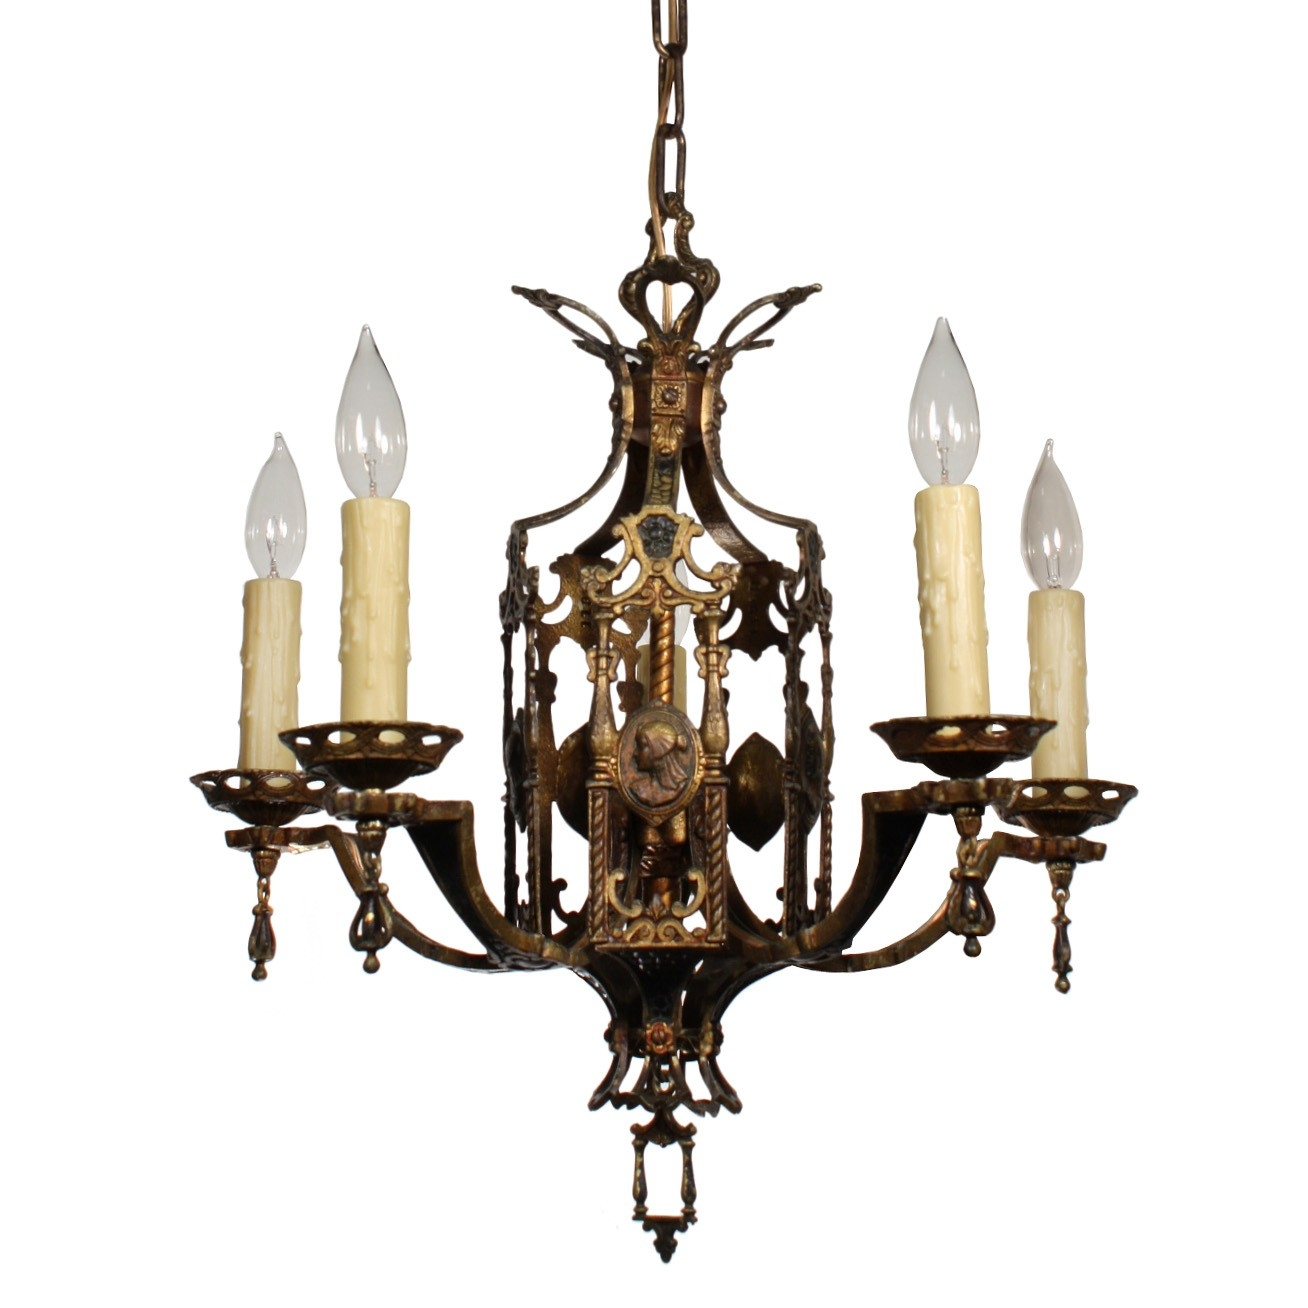 Stunning Antique Egyptian Revival Figural Chandelier With Cameos Pertaining To Egyptian Chandelier (View 4 of 12)